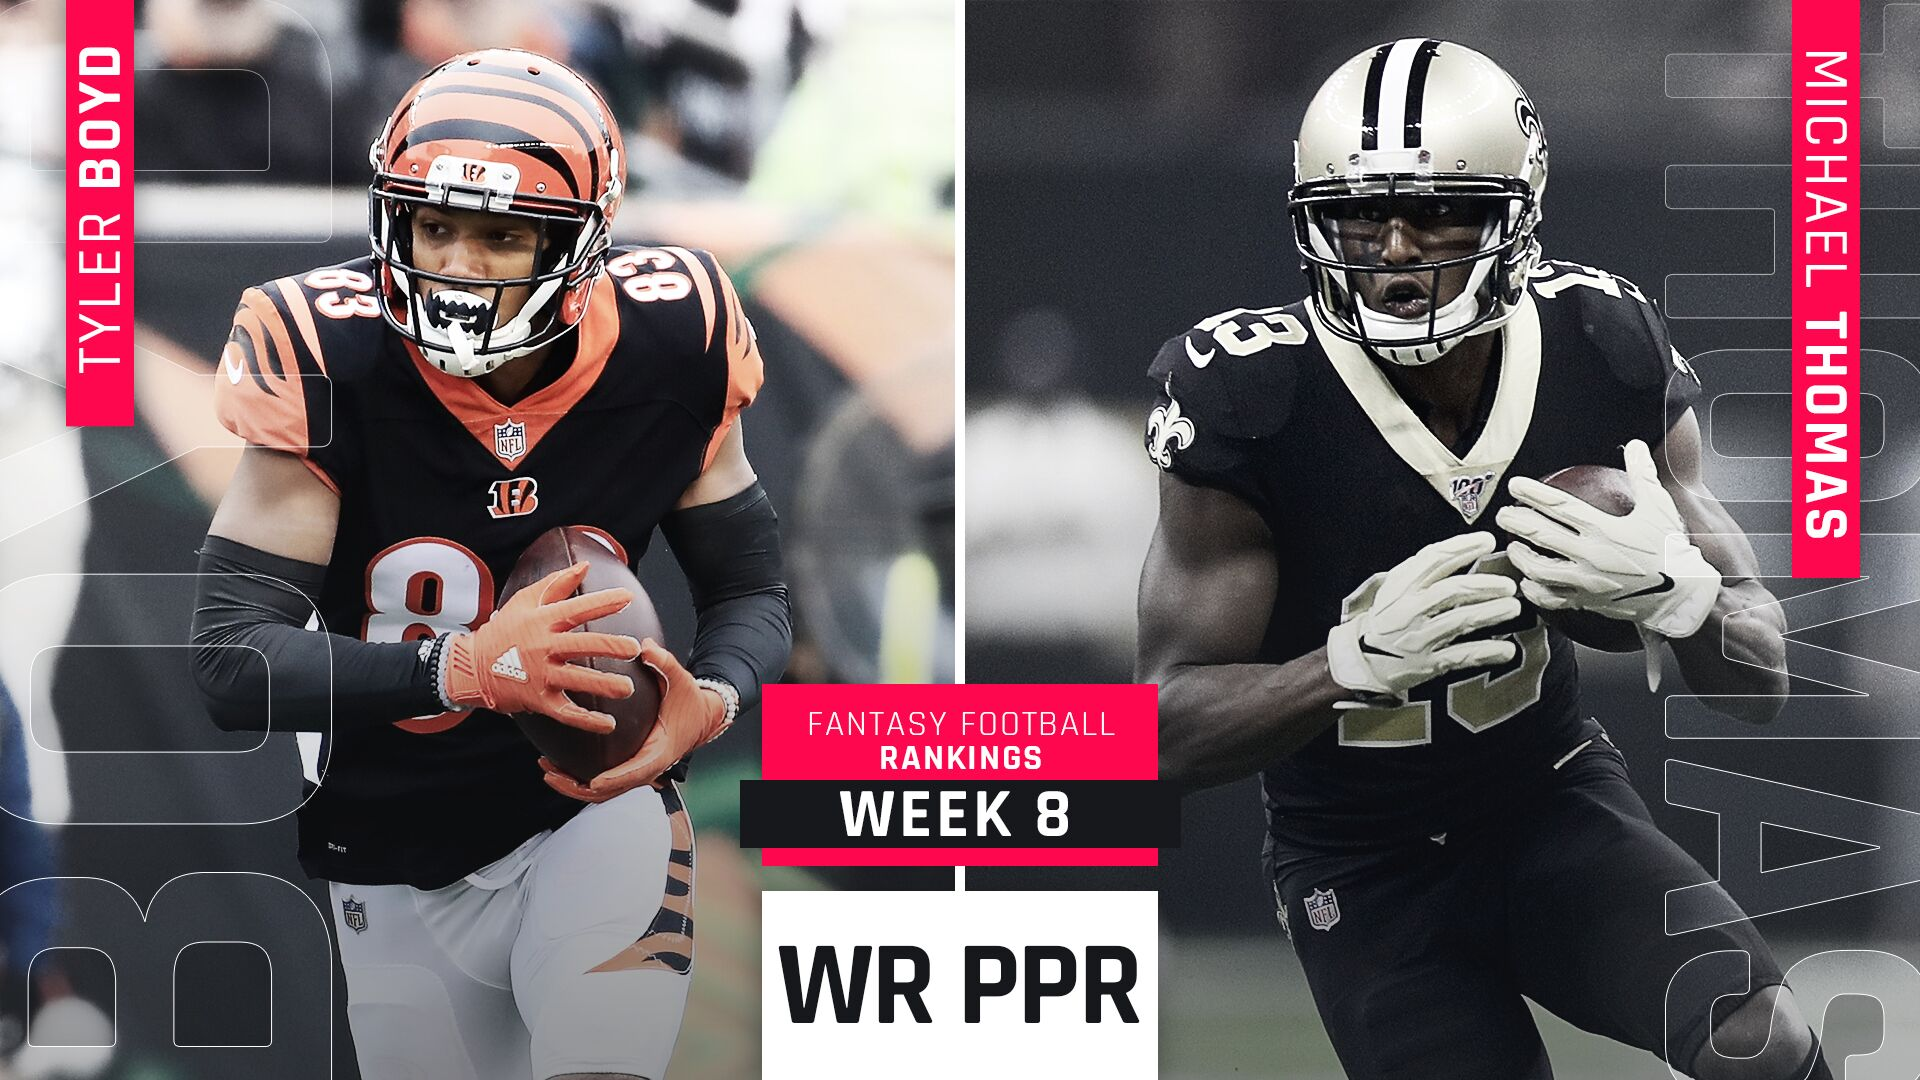 Week 8 PPR Rankings: WR